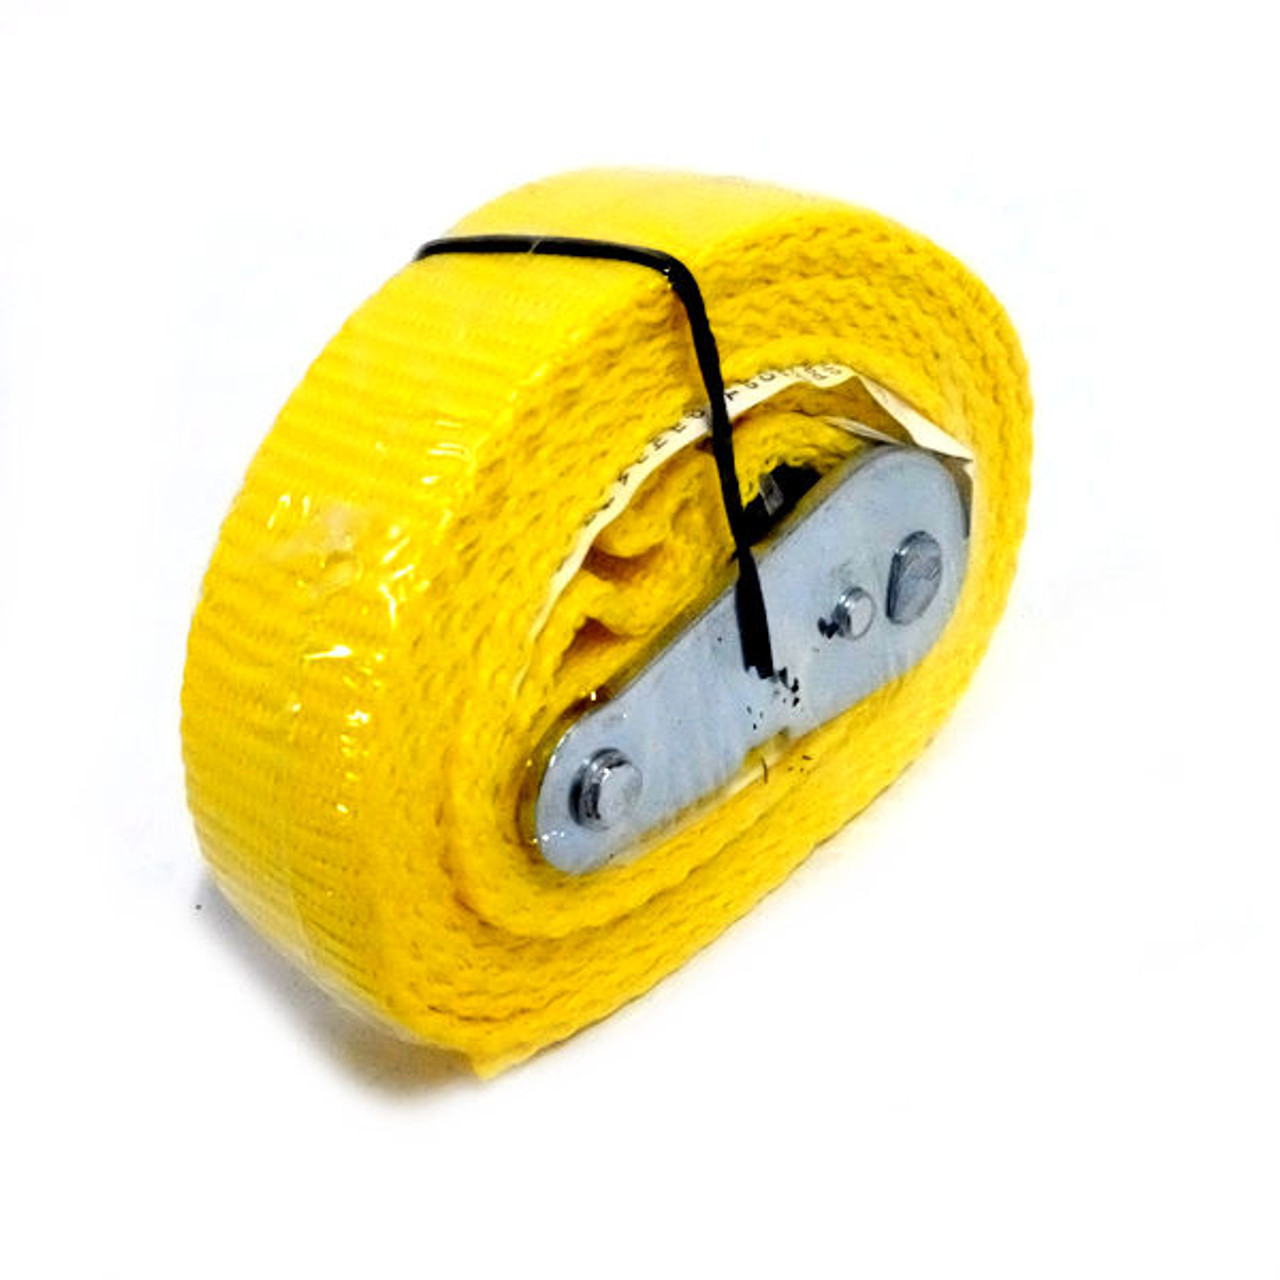 PROGRIP 512062 6 ft. x 1 in. Lashing Strap with Cambuckle in Yellow - 36 Pack